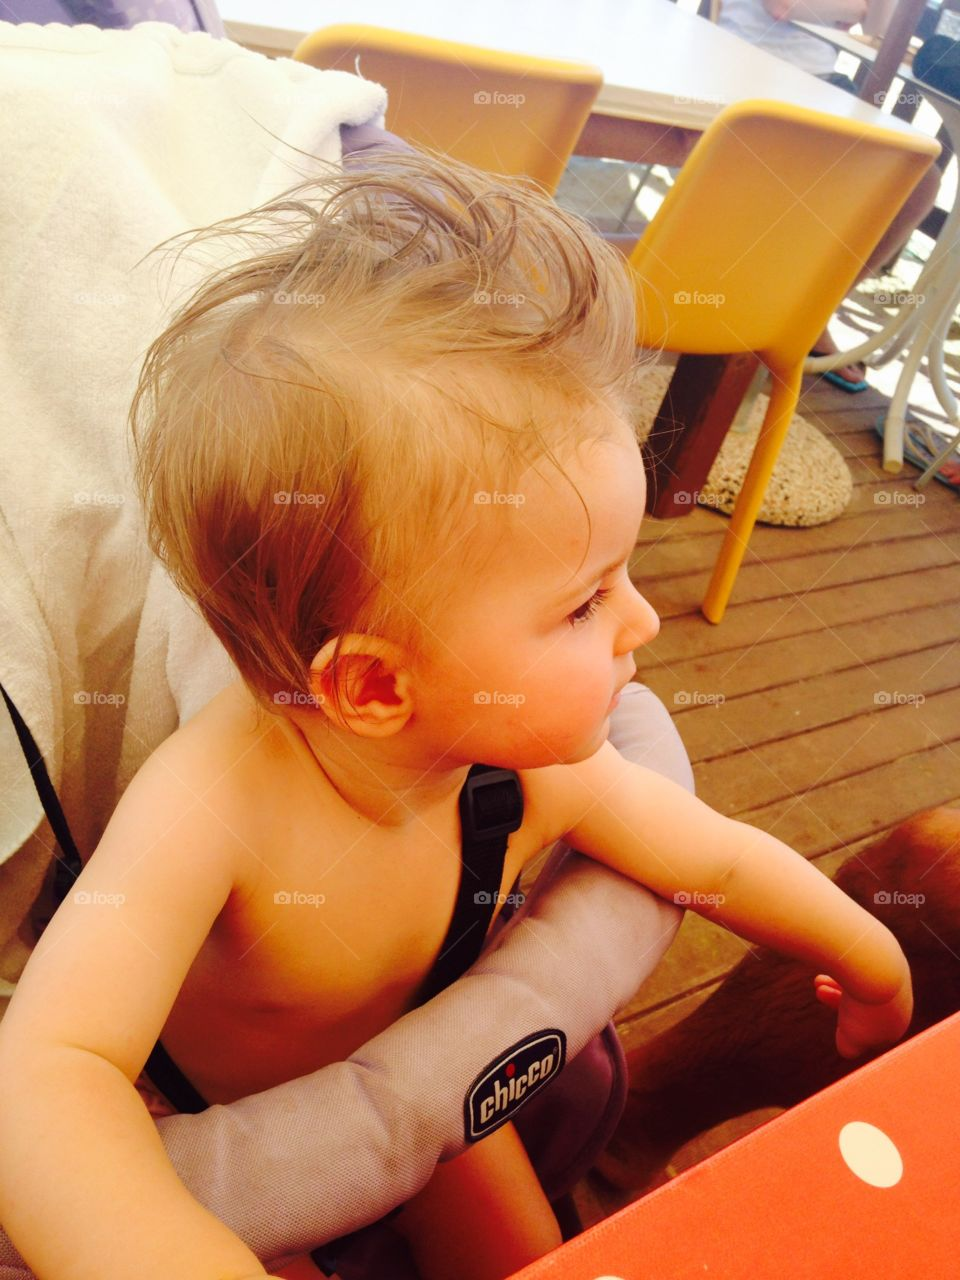 Baby with funny hair